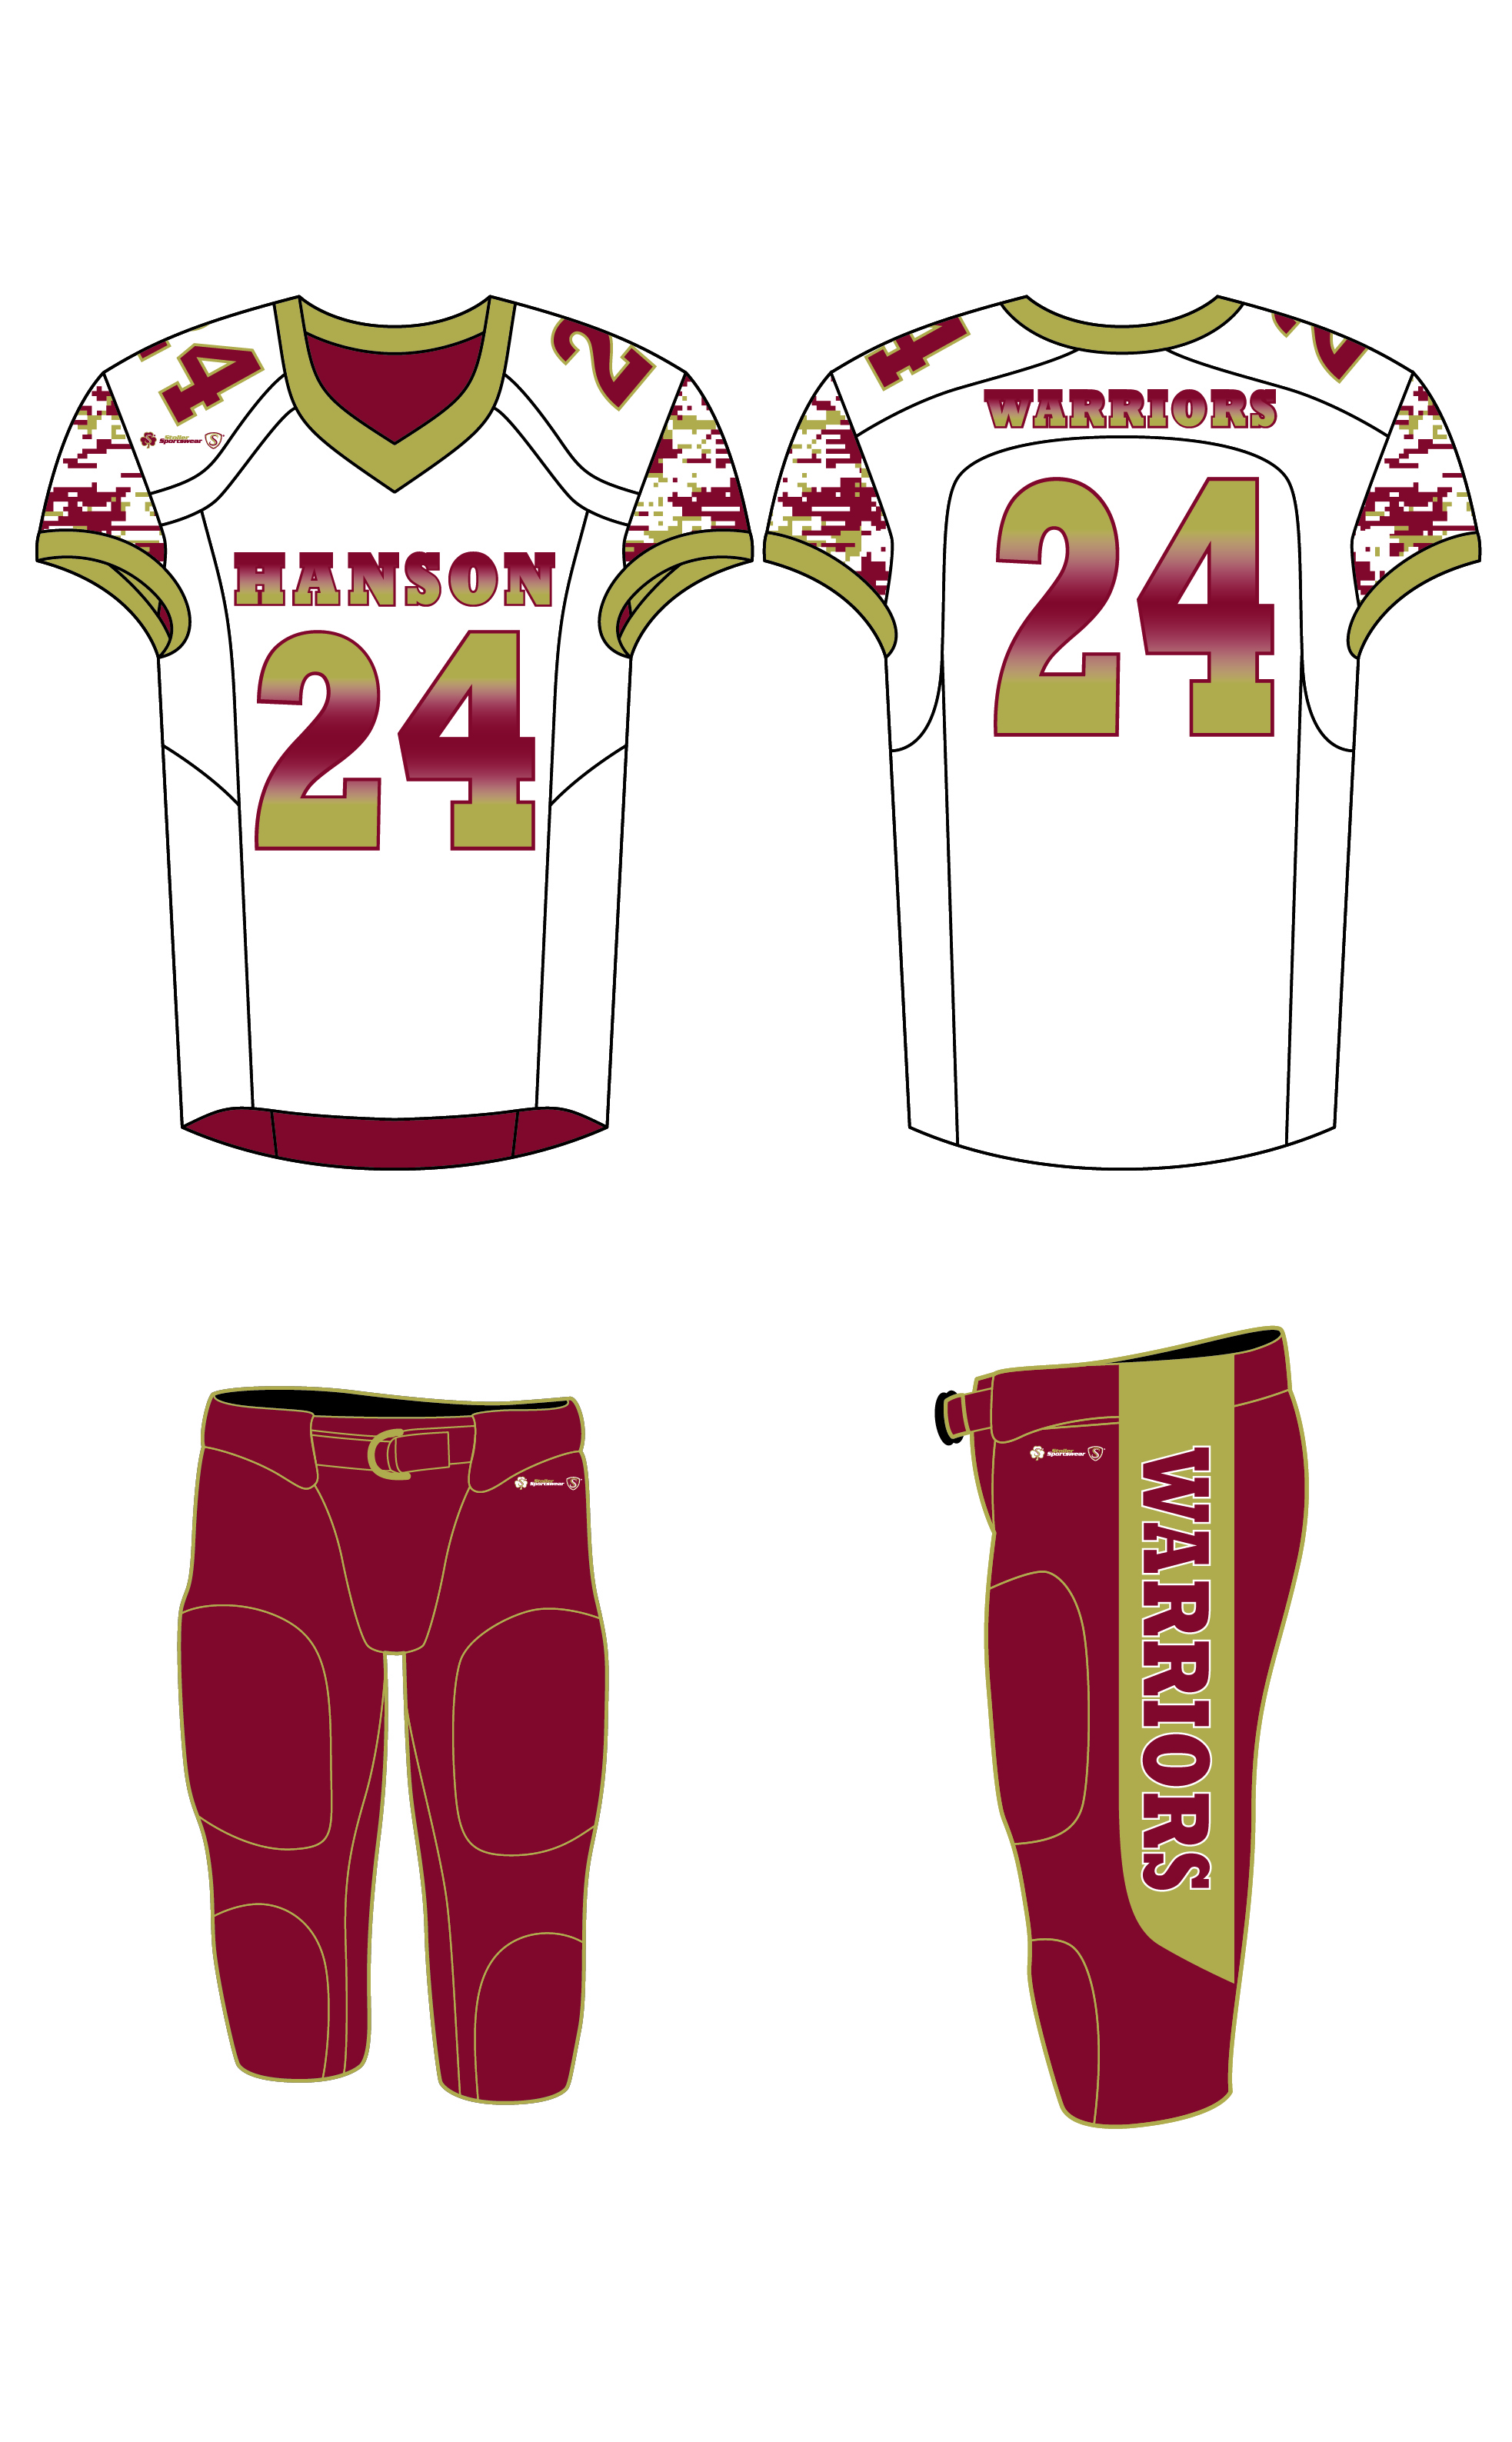 Sublimated Jersey - Hanson Warriors White